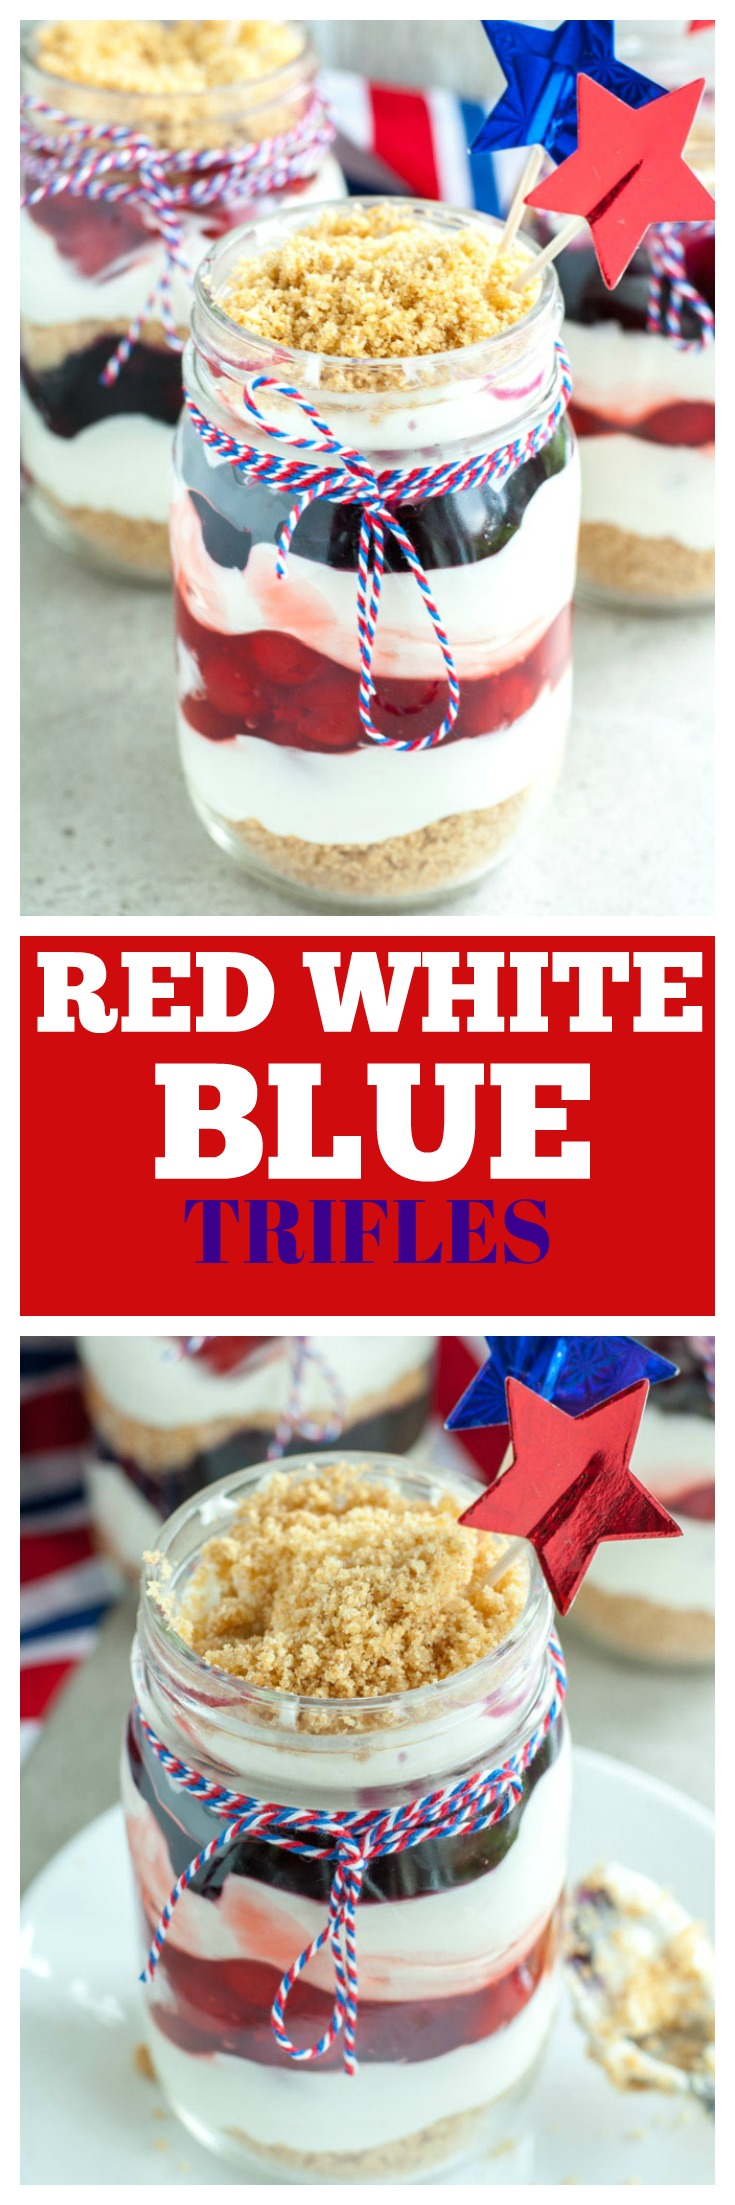 Red White and Blue Trifles PIN